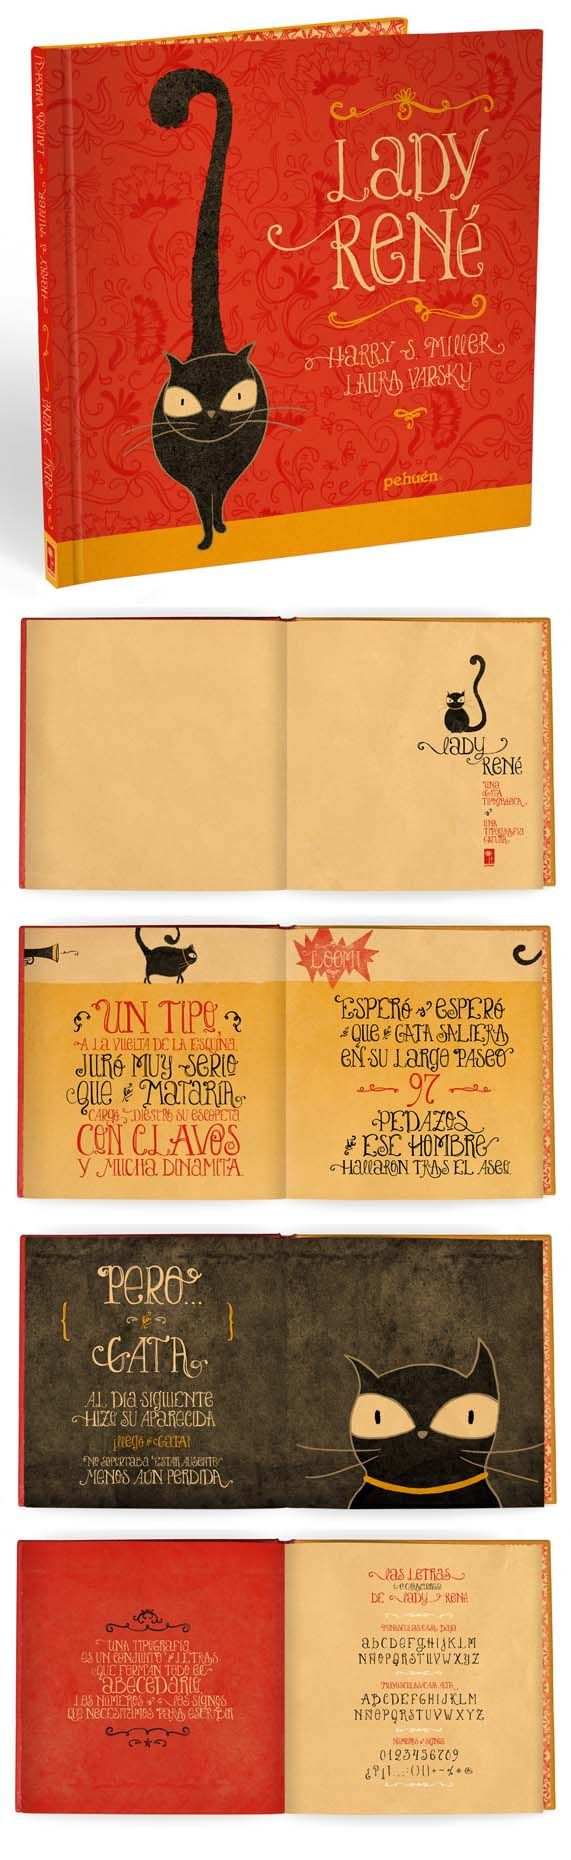 Laura Varsky - Lady Rene beautiful illustrated children's book about a cat and handmade typography